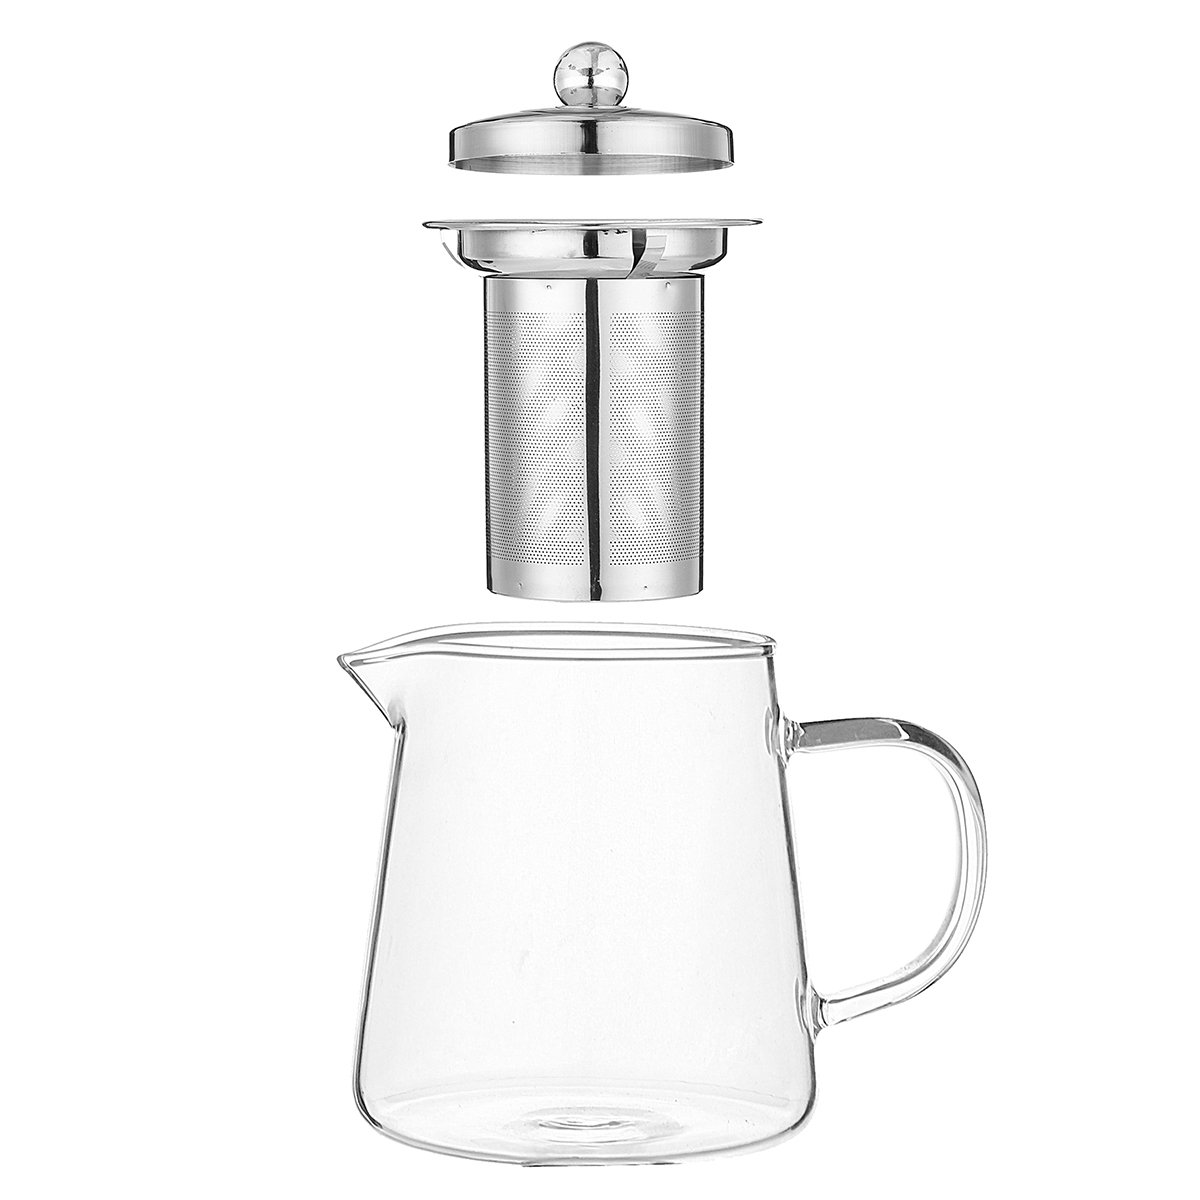 Electric Stove Mini Coffee Brewing Tea Stove Glass Tea Maker Electric Kettle Water Heater 20